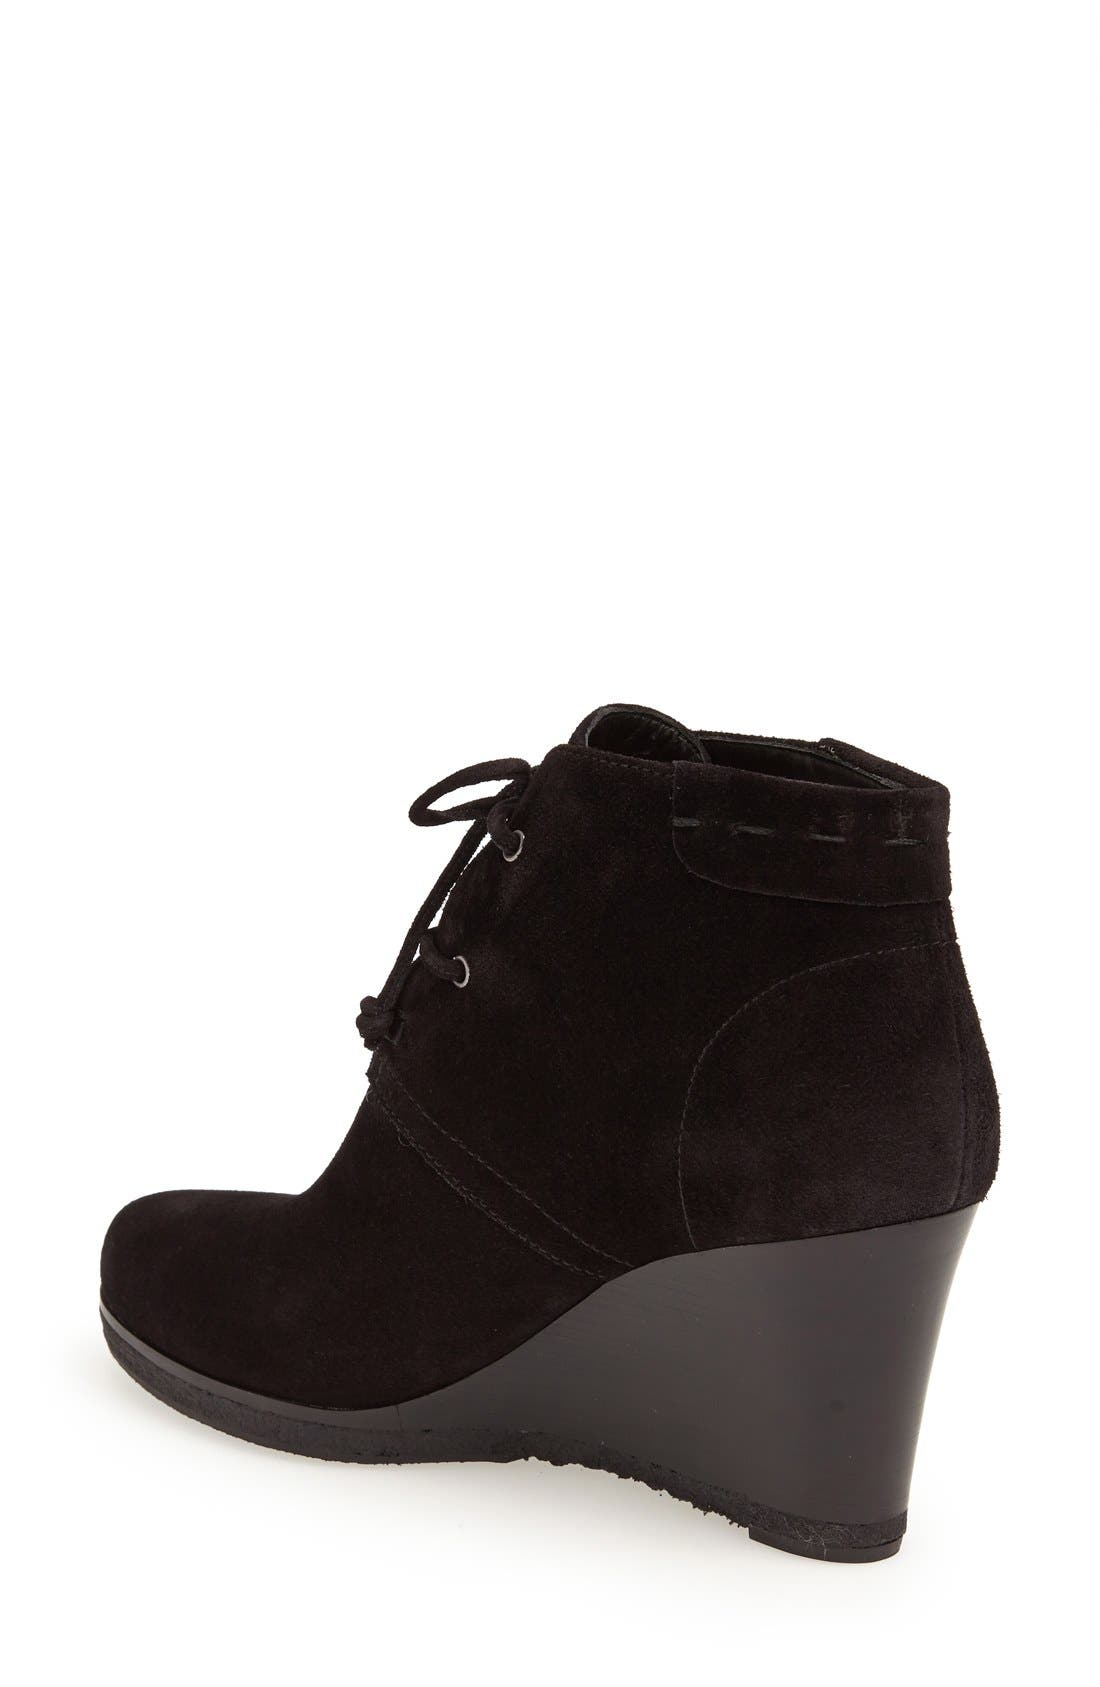 'Mirren' Wedge Bootie,                             Alternate thumbnail 2, color,                             002